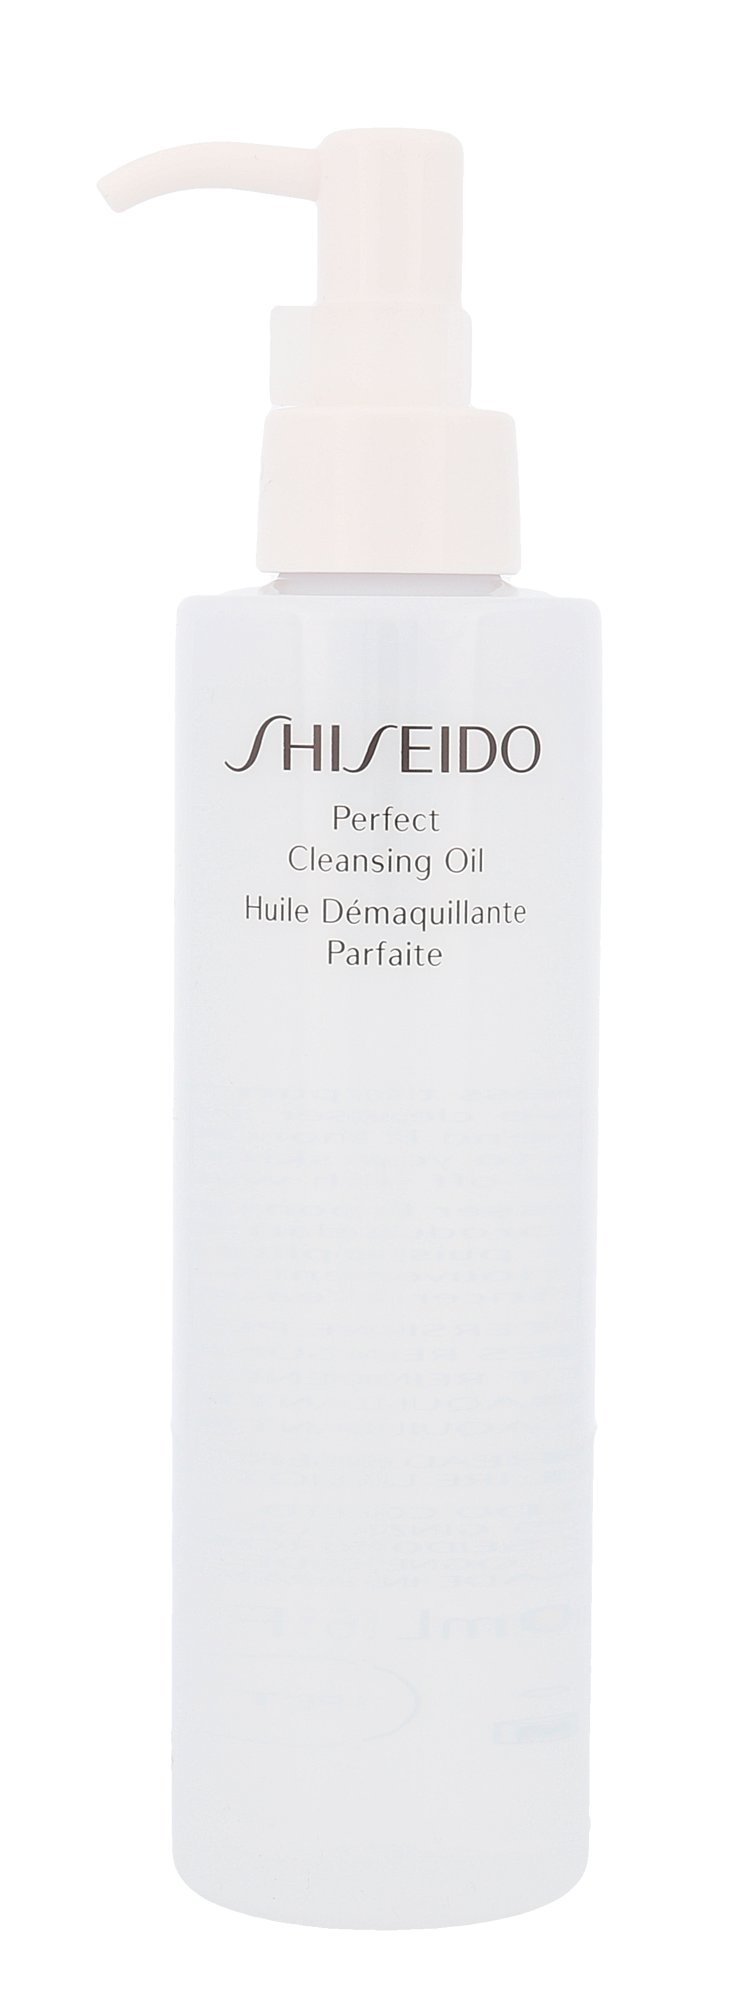 Shiseido Perfect, Čistiaci olej 180ml